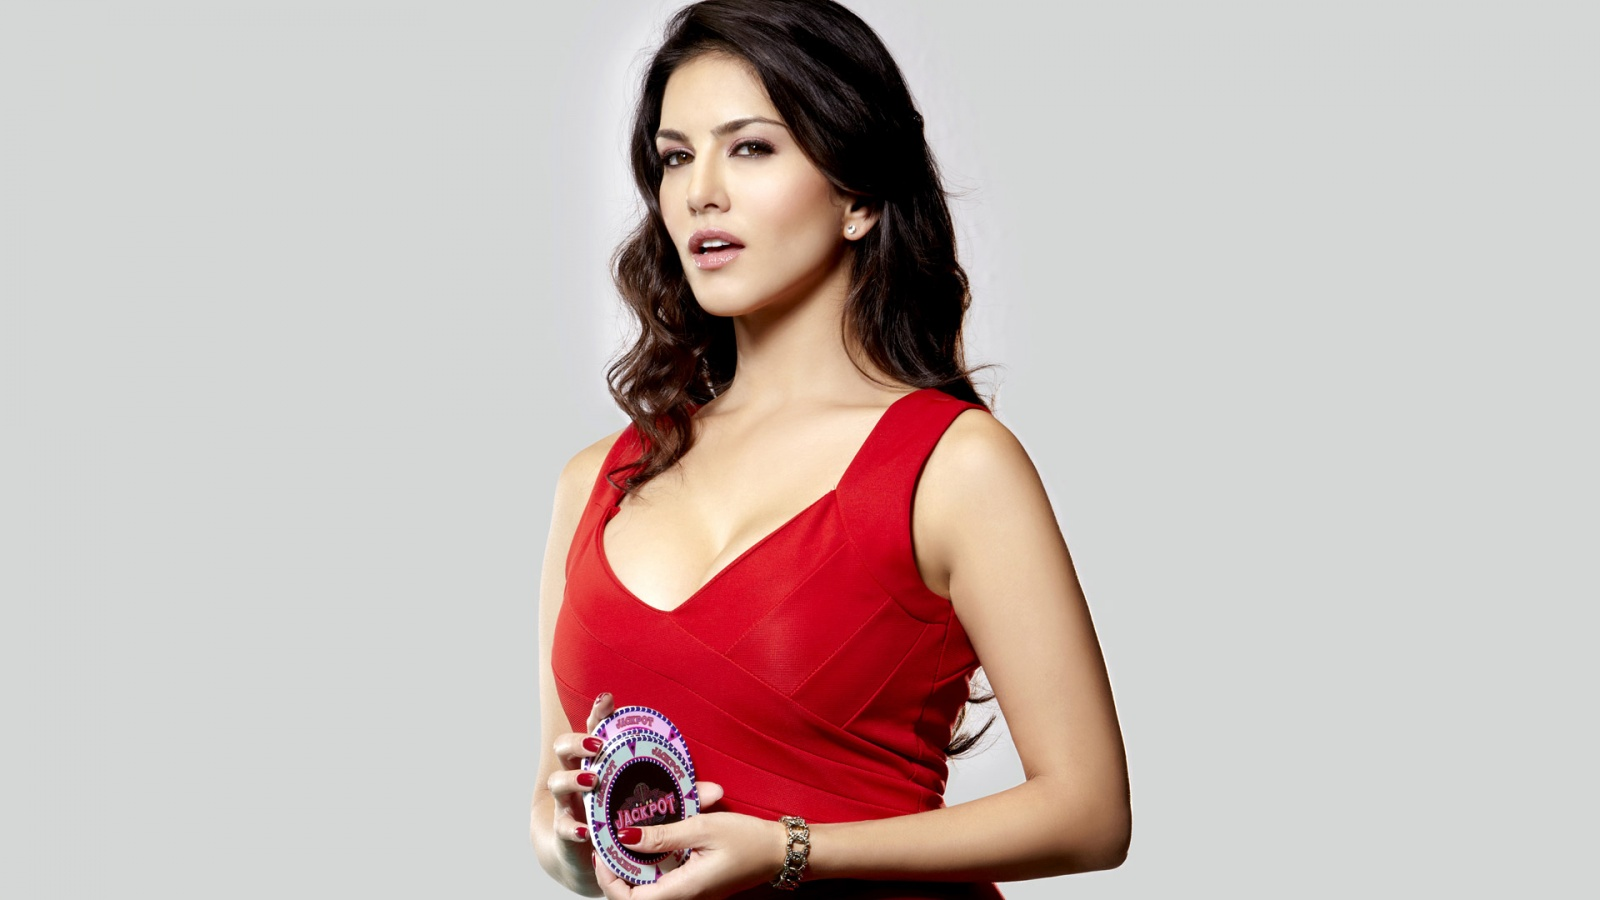 actress sunny leone wallpapers in jpg format for free download